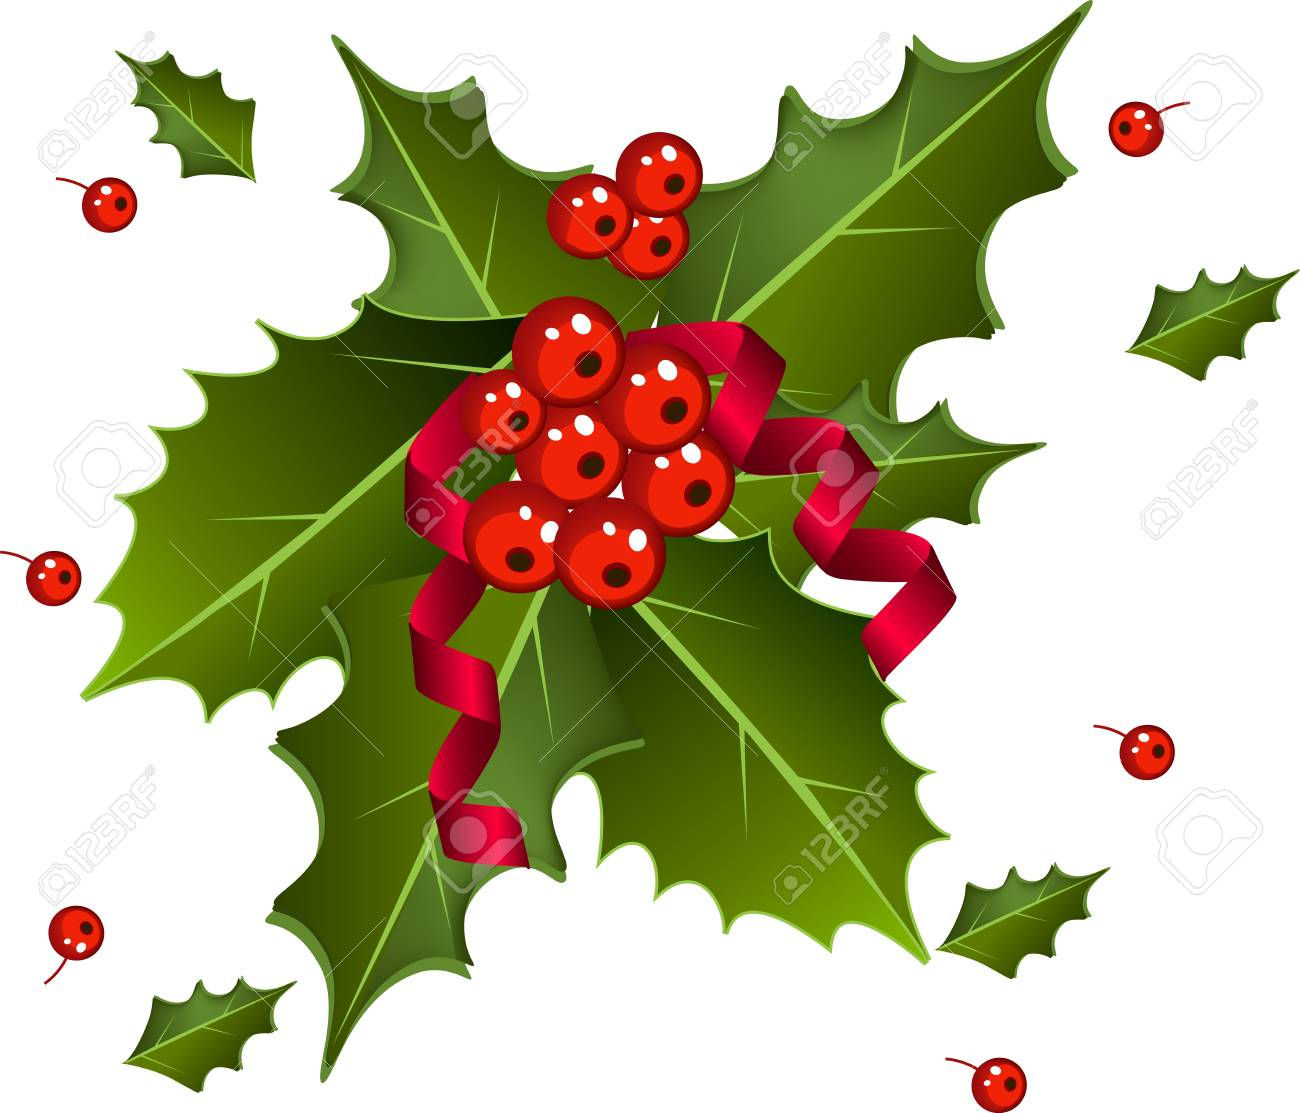 Christmas Leaves.Christmas Berries With Red Ribbon And Green Leaves Over White